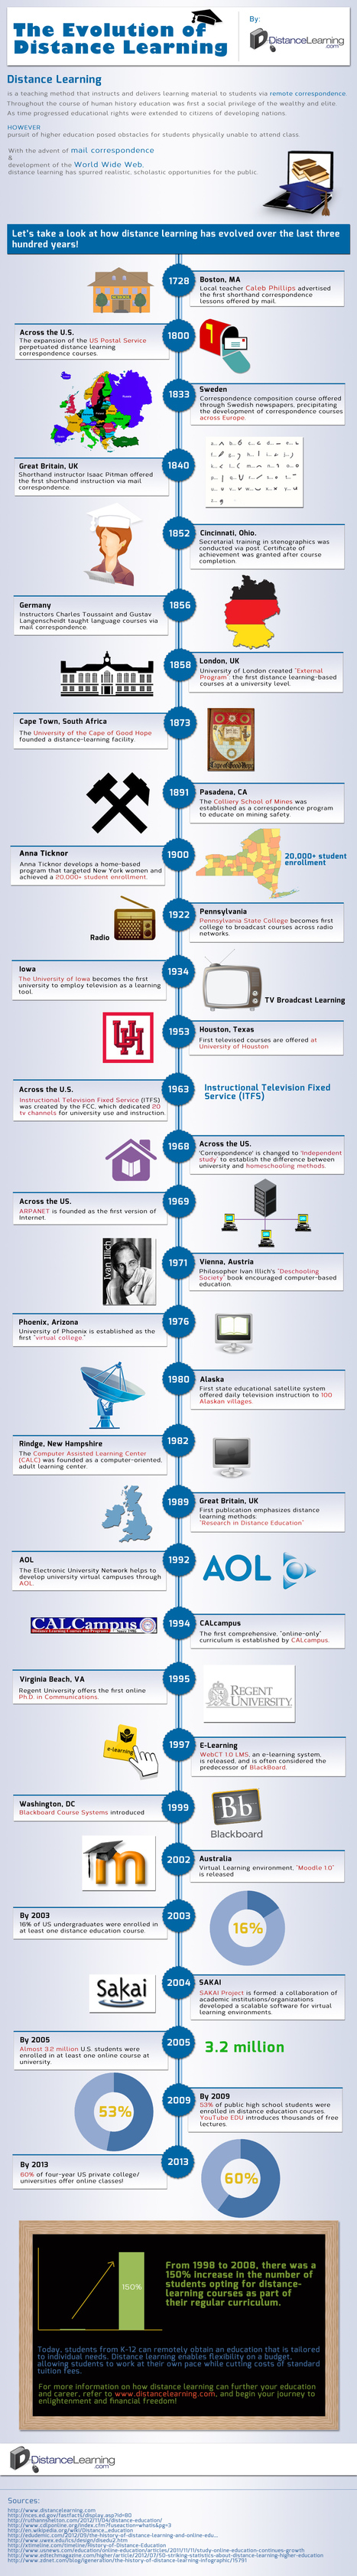 The Evolution of Distance Learning – Infographic | The new old world of learning | Scoop.it